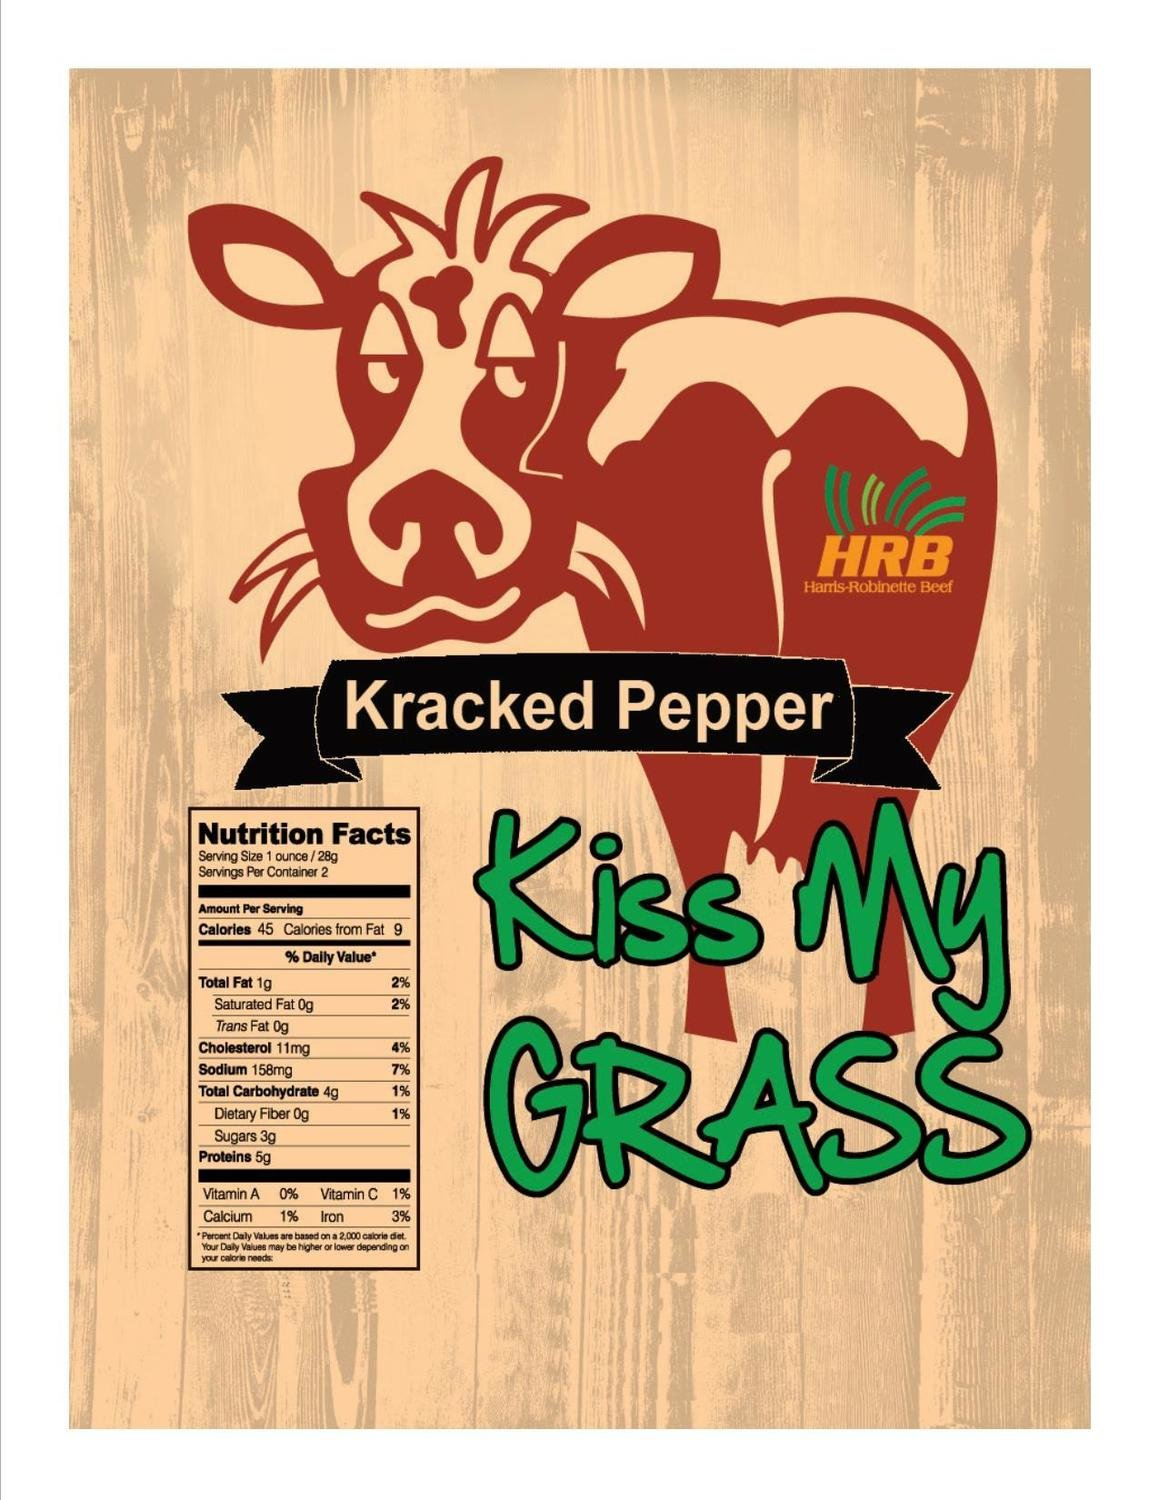 Kracked Pepper